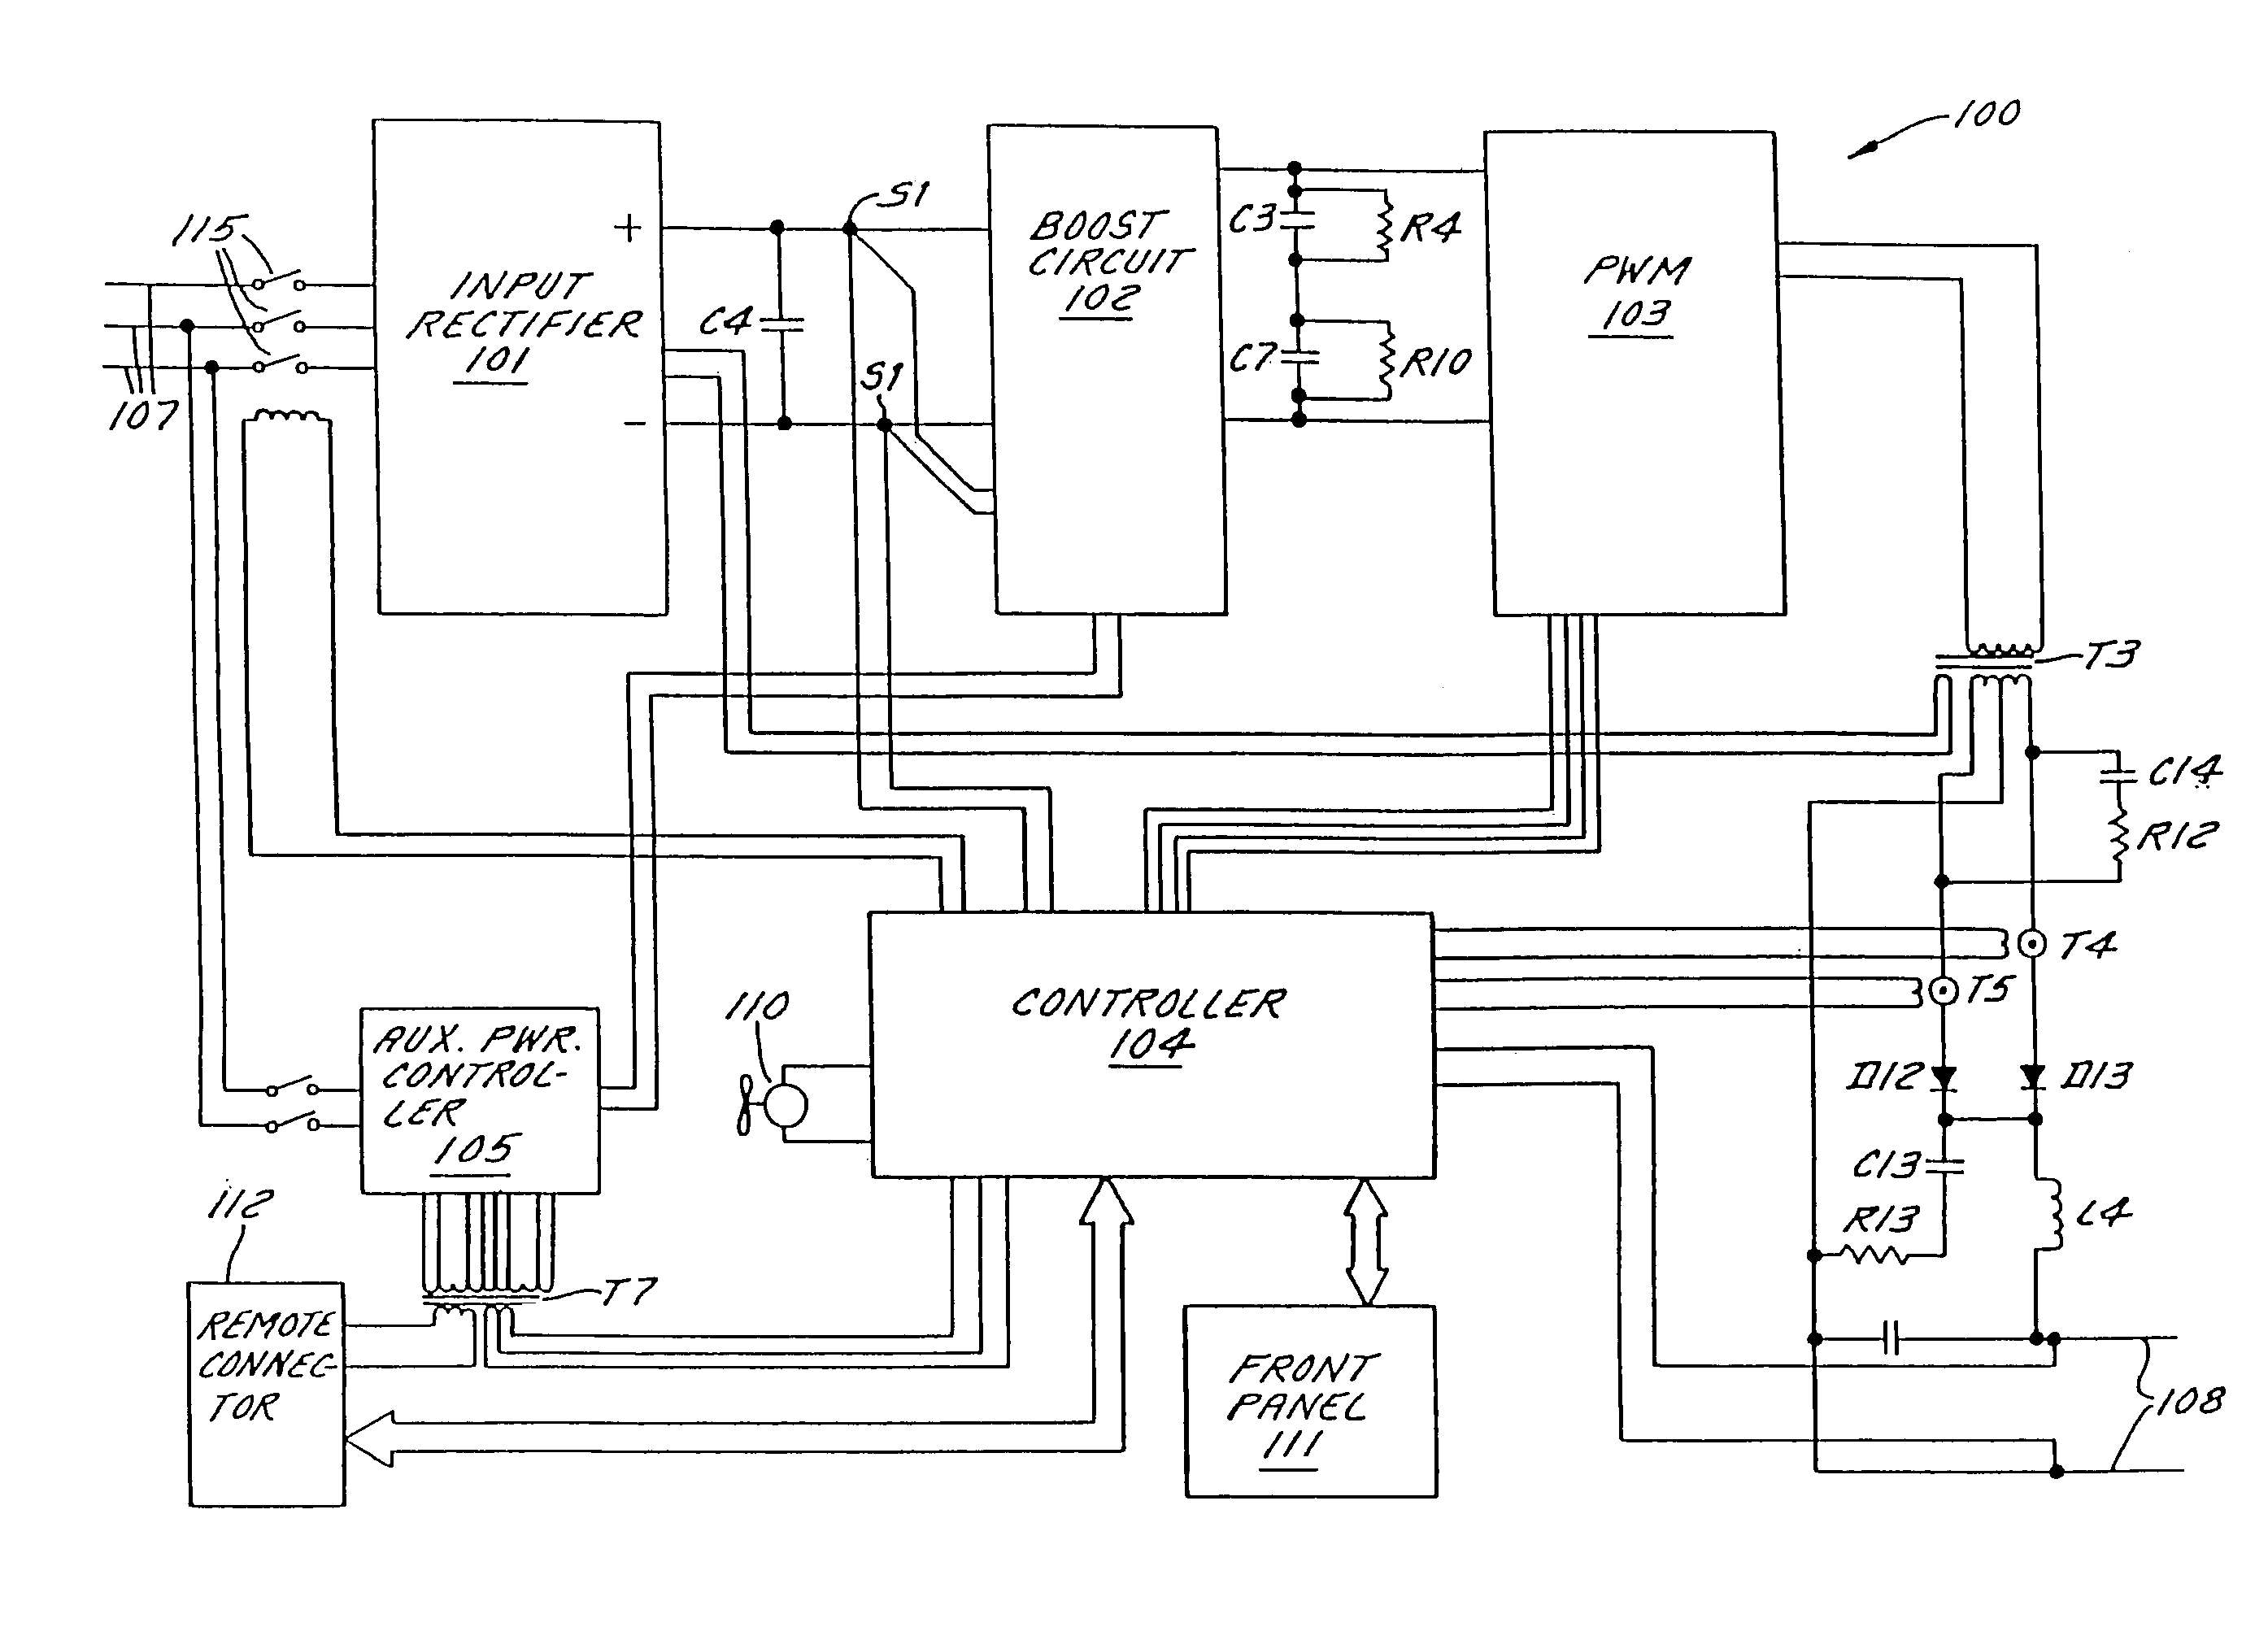 sa 200 remote wiring diagram get free image about wiring diagram